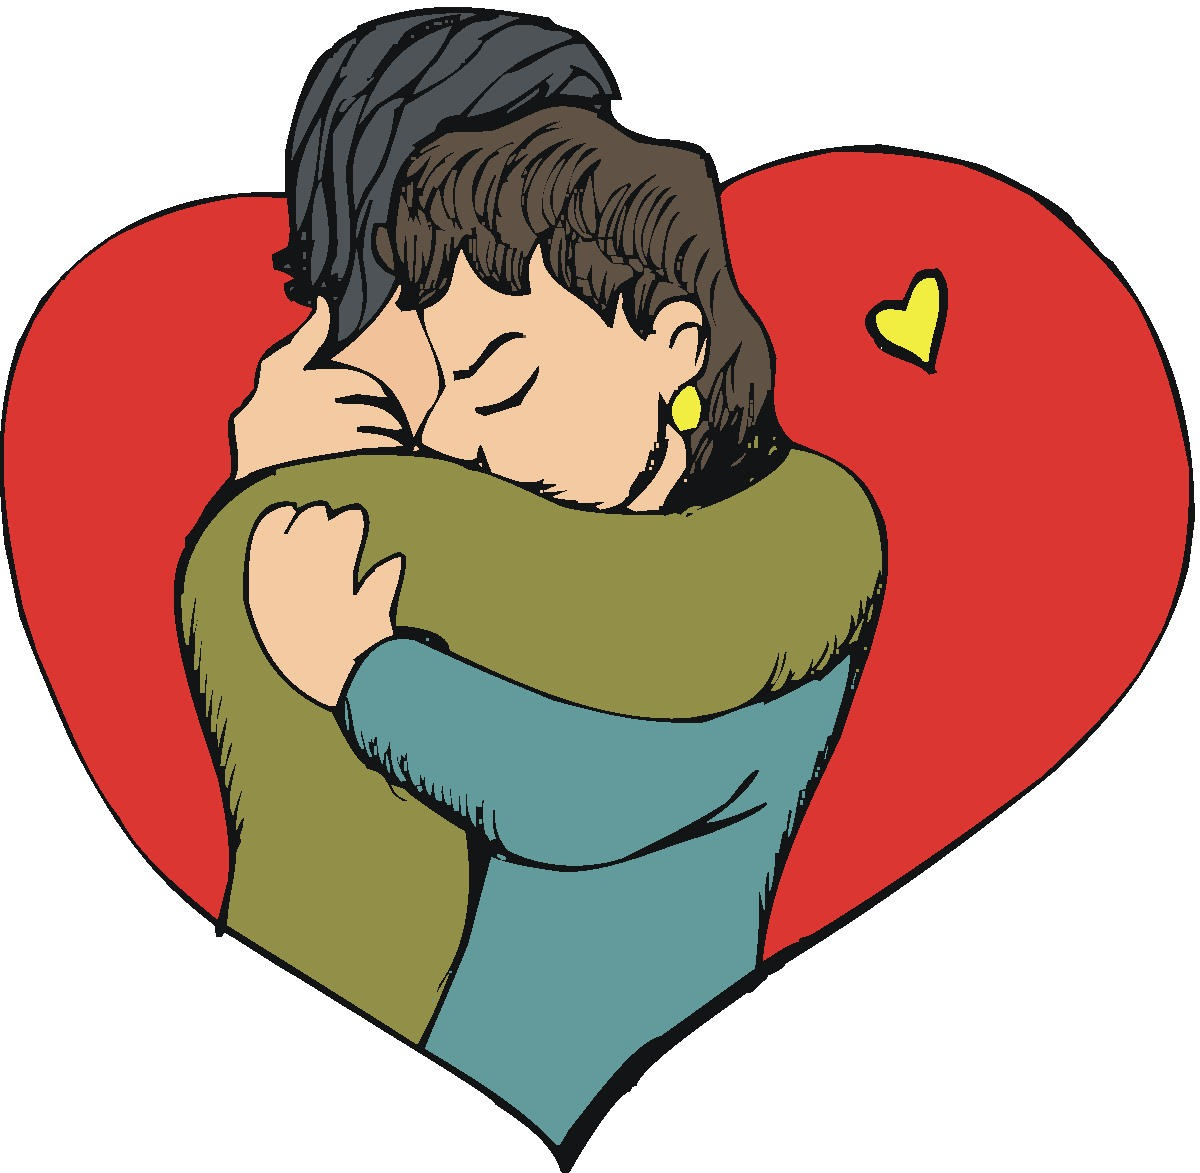 Friends Hugging Drawing Clipart Panda Fr-Friends Hugging Drawing Clipart Panda Free Clipart Images-15